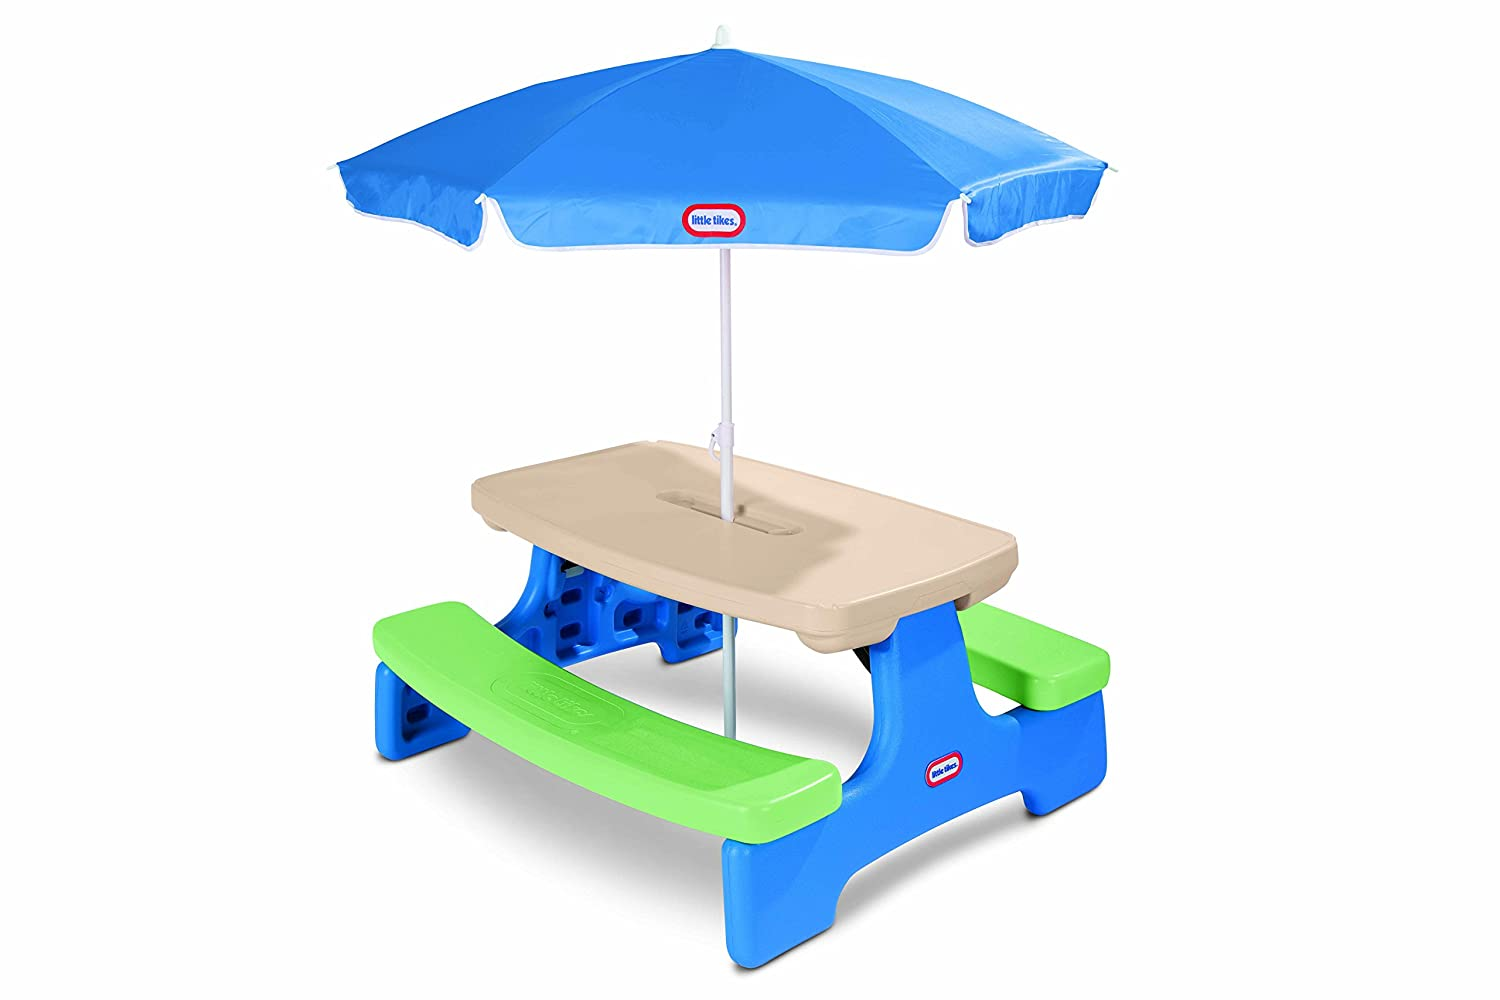 Amazon.com: Little Tikes Easy Store Picnic Table with Umbrella: Toys ...